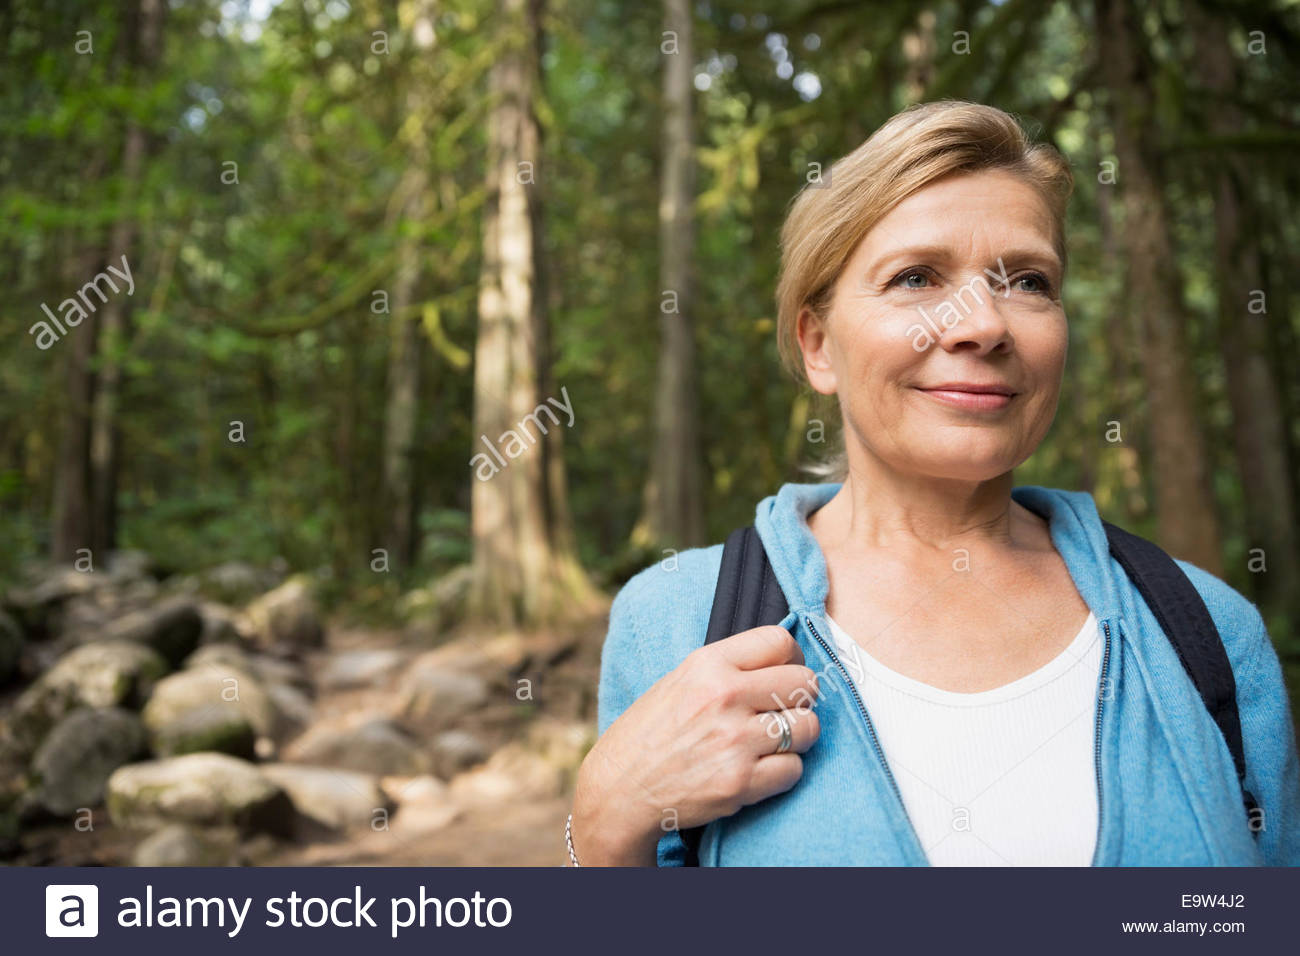 Smiling woman hiking in woods Photo Stock